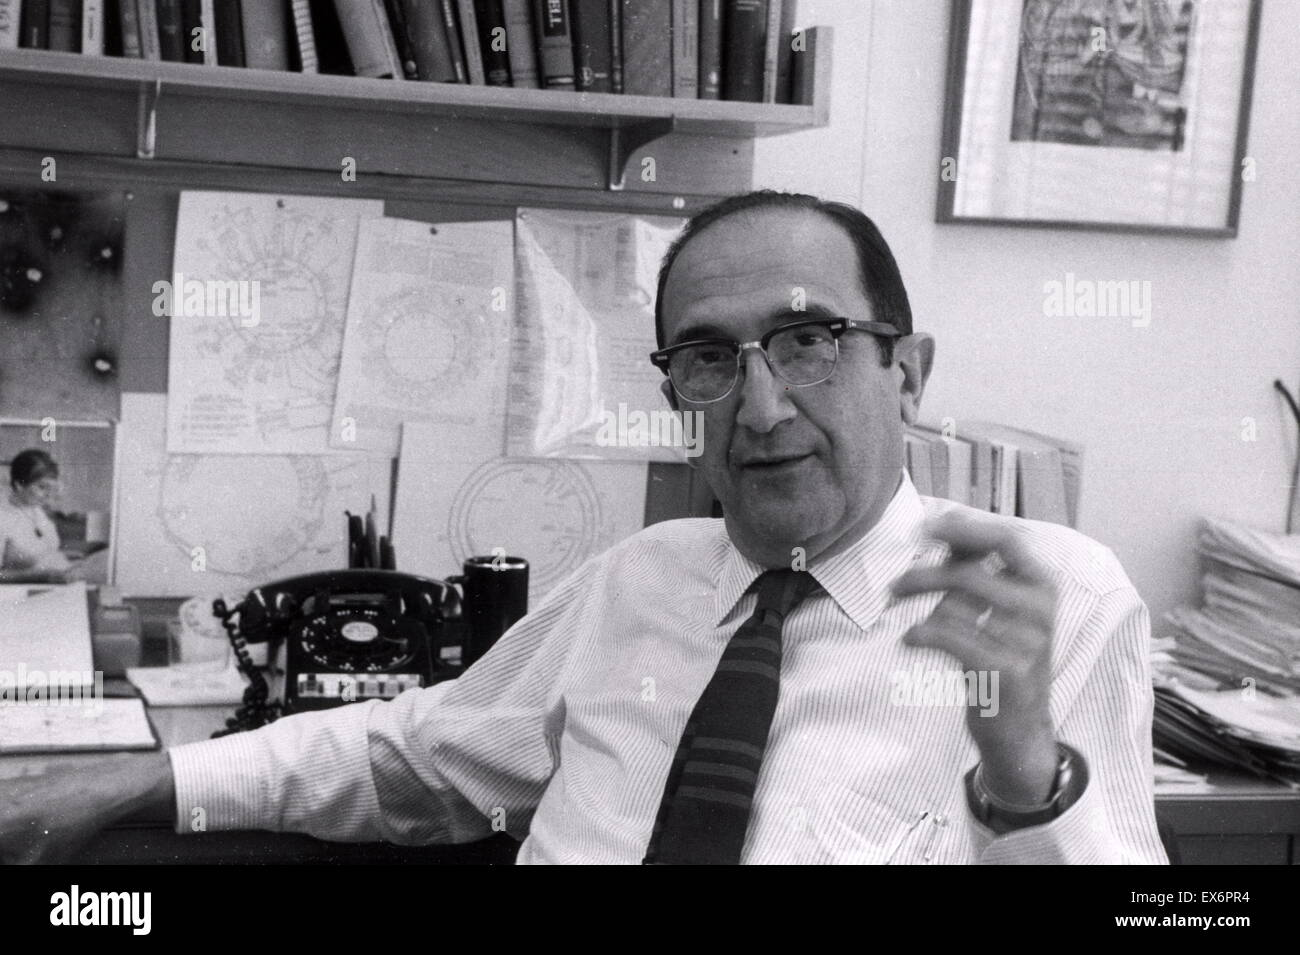 Salvador Luria in his office at MIT in Boston 1967. Salvador Edward Luria (1912 – 1991) Italian genetics researcher and microbiologist, later a naturalized American citizen. He won the Nobel Prize in Physiology or Medicine in 1969 Stock Photo